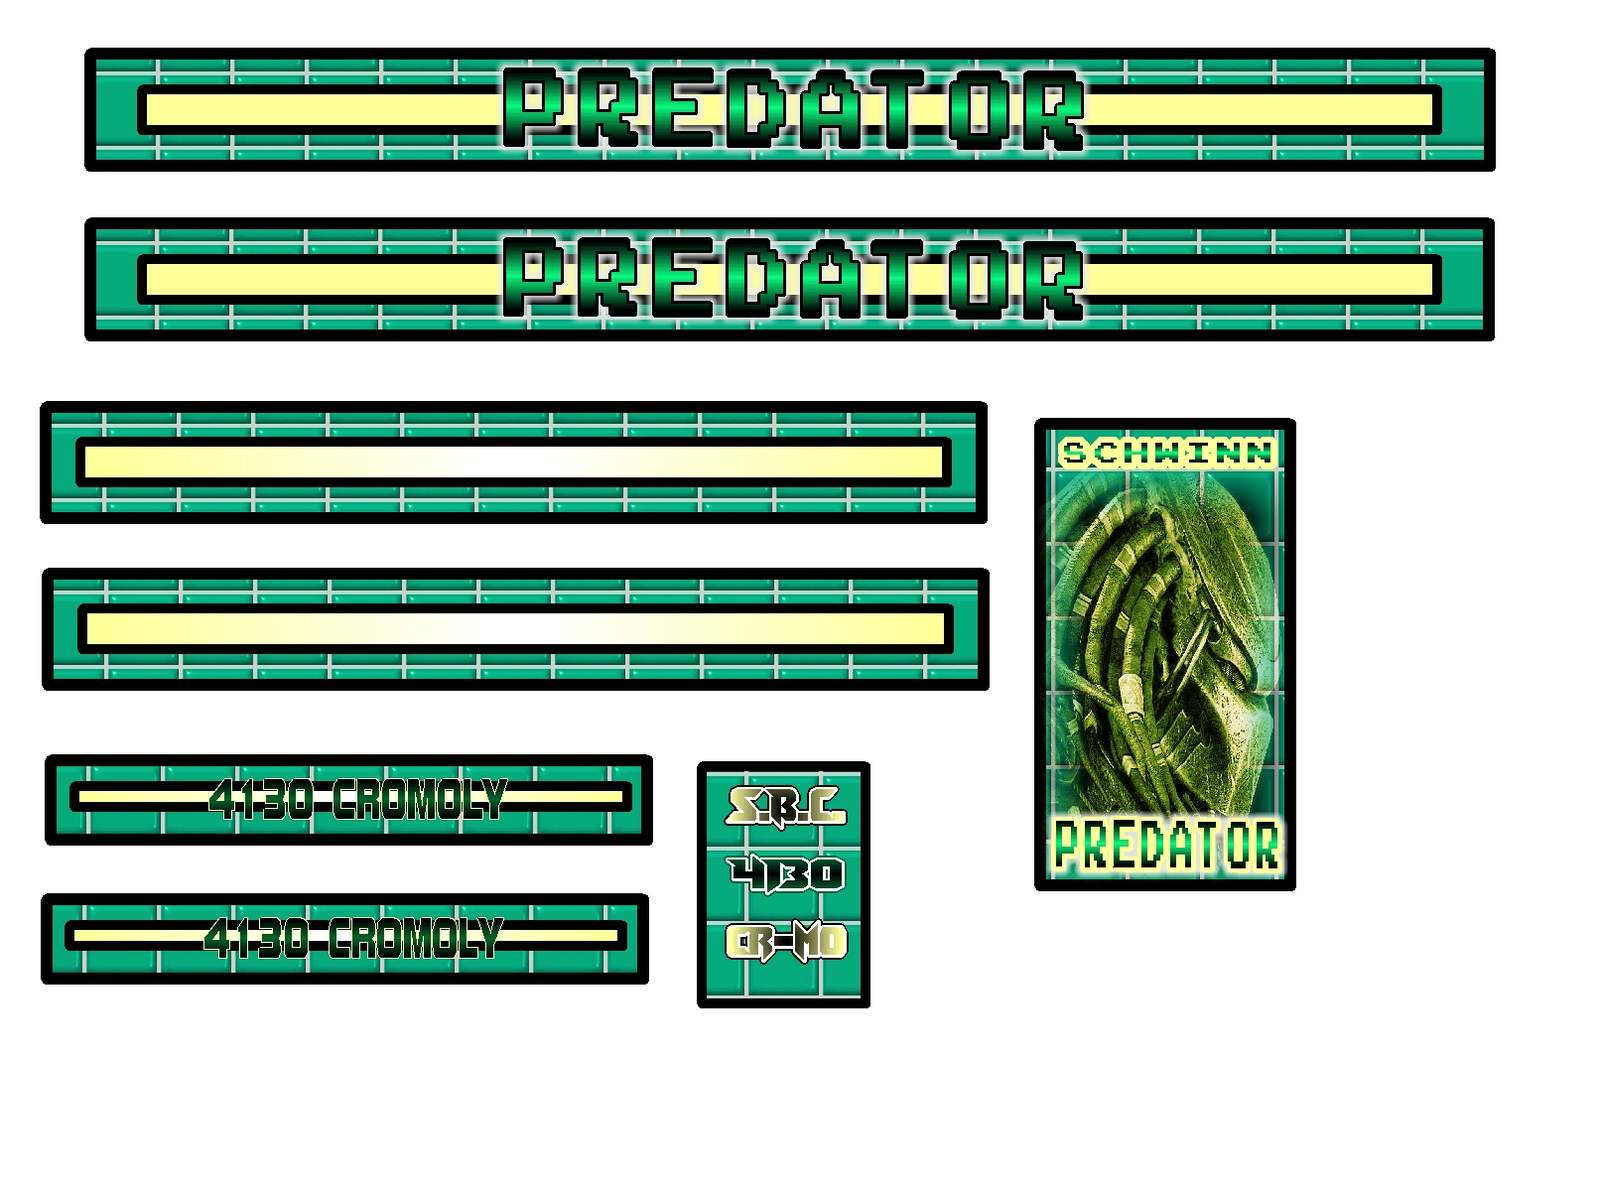 http://uploads.bmxmuseum.com/user-images/61851/pred-yel-grn-decal-layout-0015b3f649b74.jpg